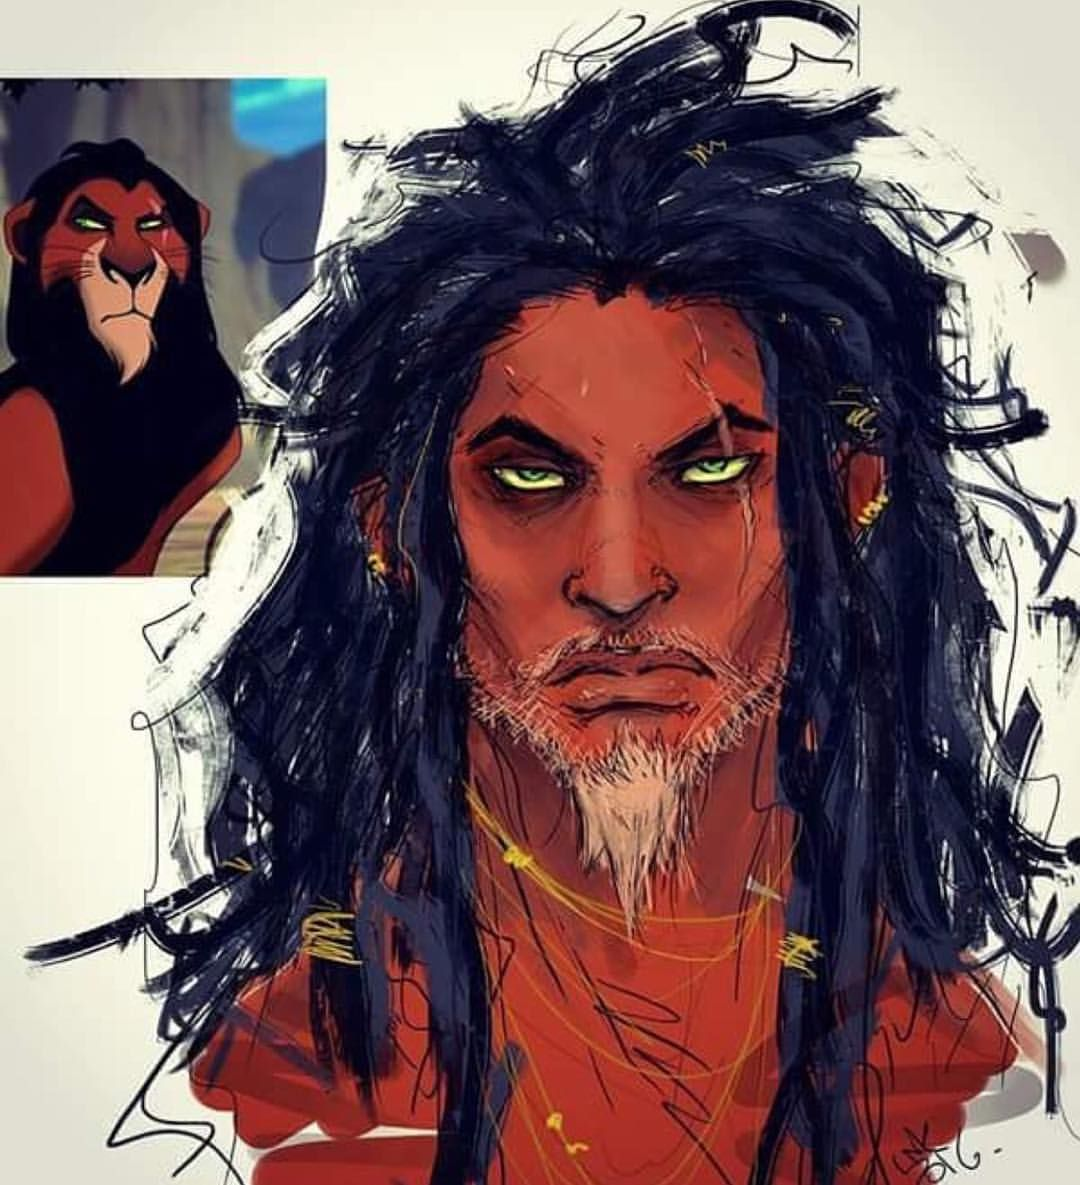 Scar, from the Disney classic, The Lion King, reimagined as human ...